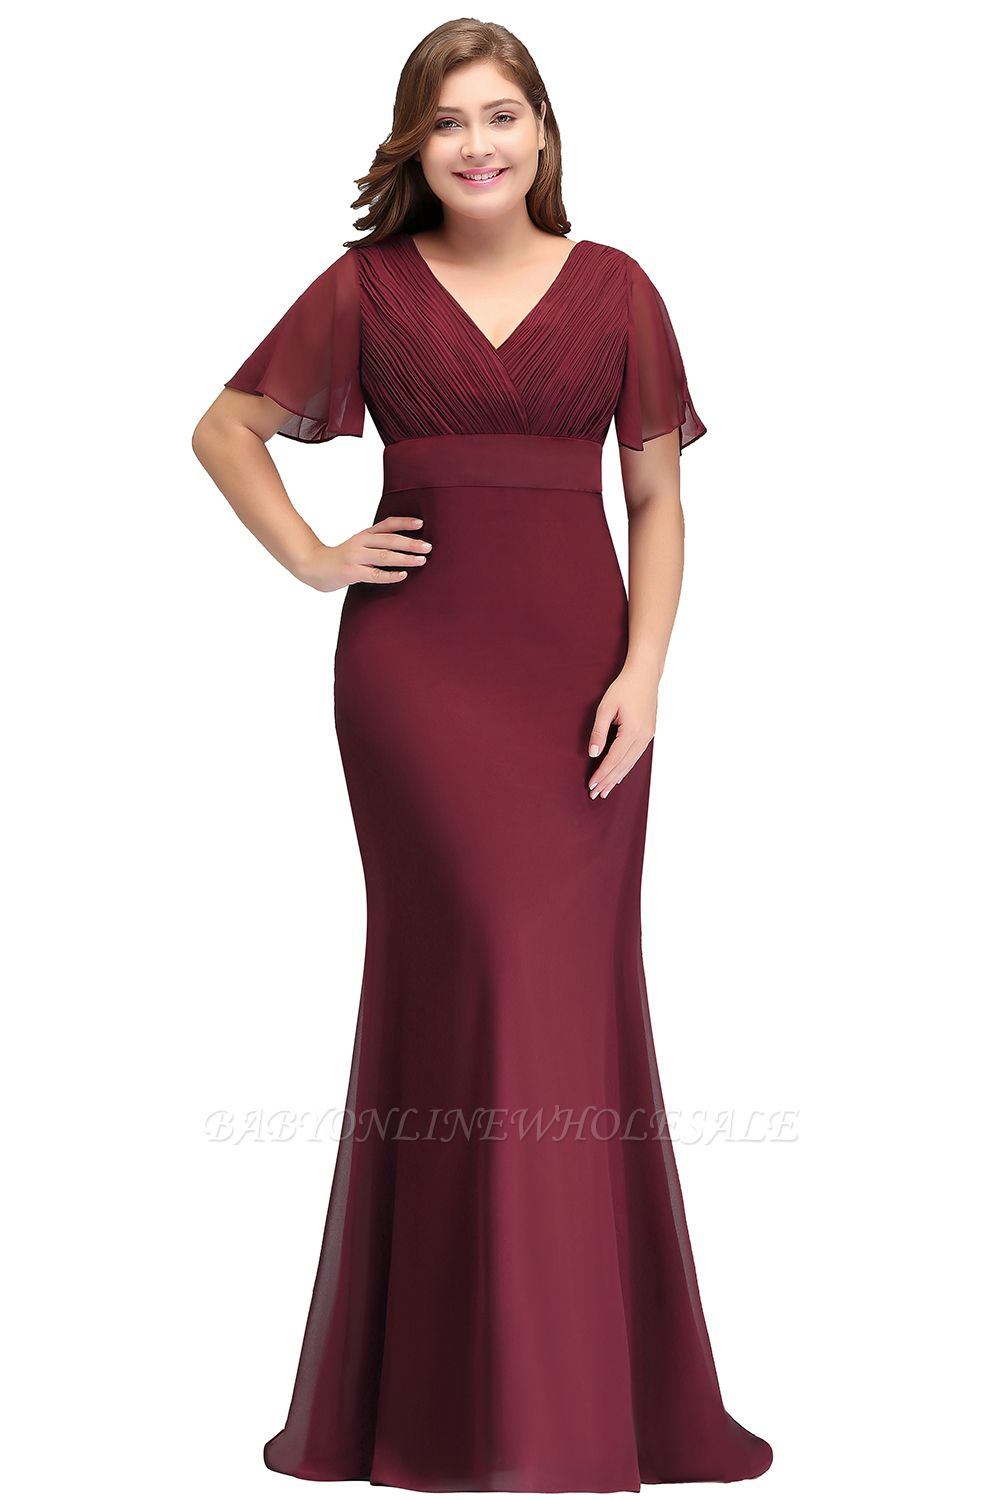 JAYDE | Mermaid V-neck Floor Length Short Sleeves Burgundy Plus size bridesmaid Dresses with Sash